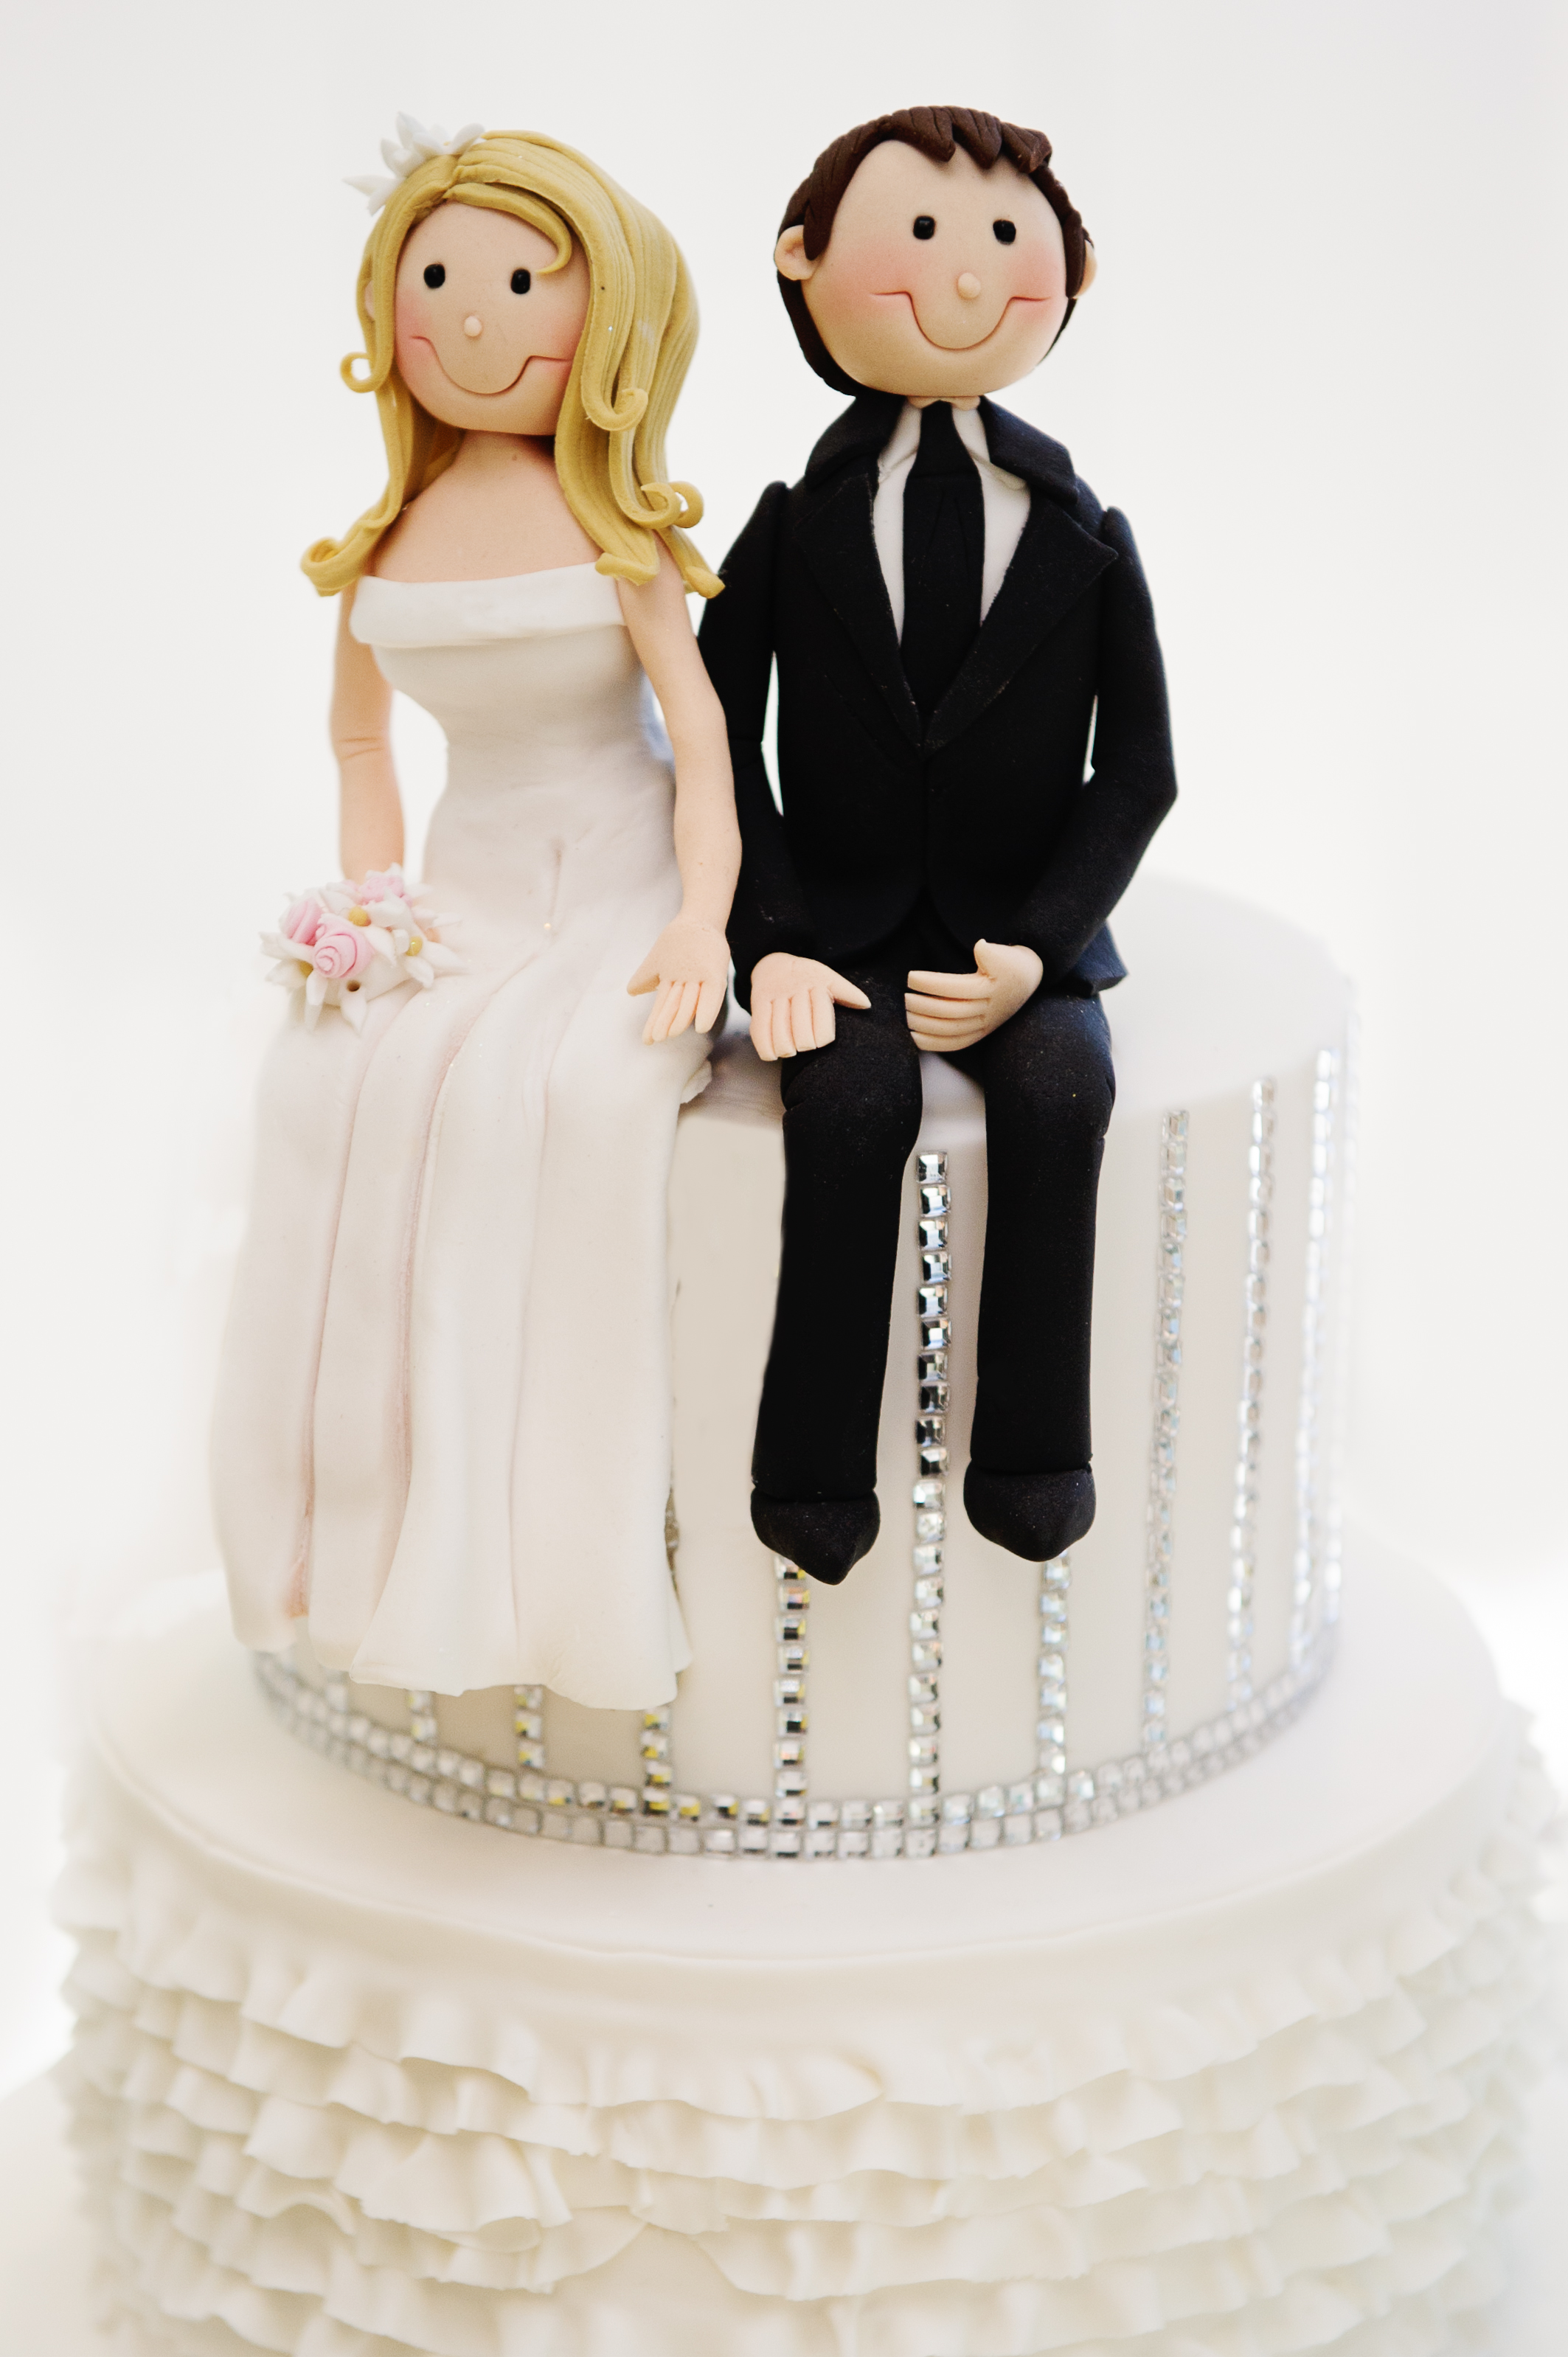 Make A Bride And Groom Figurine With Verusca Walker Video